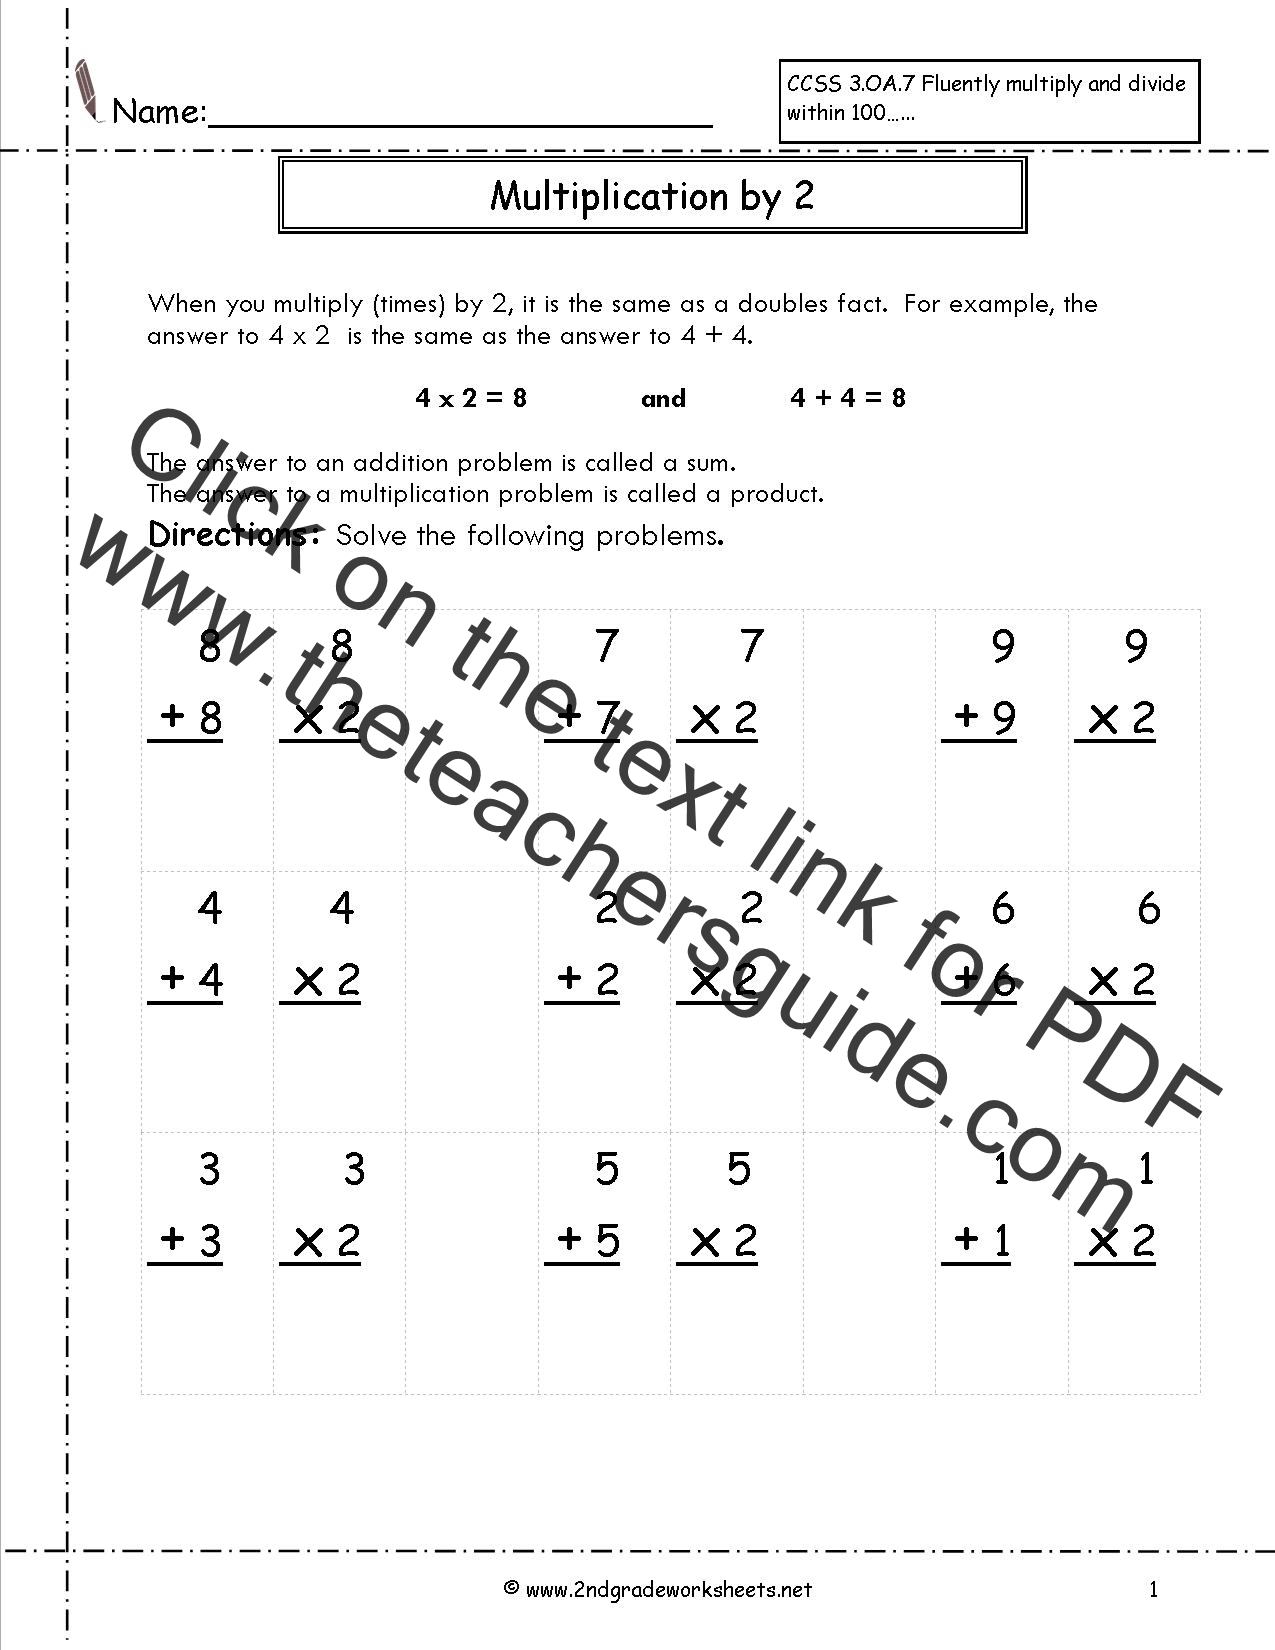 Multiplication Worksheet X2